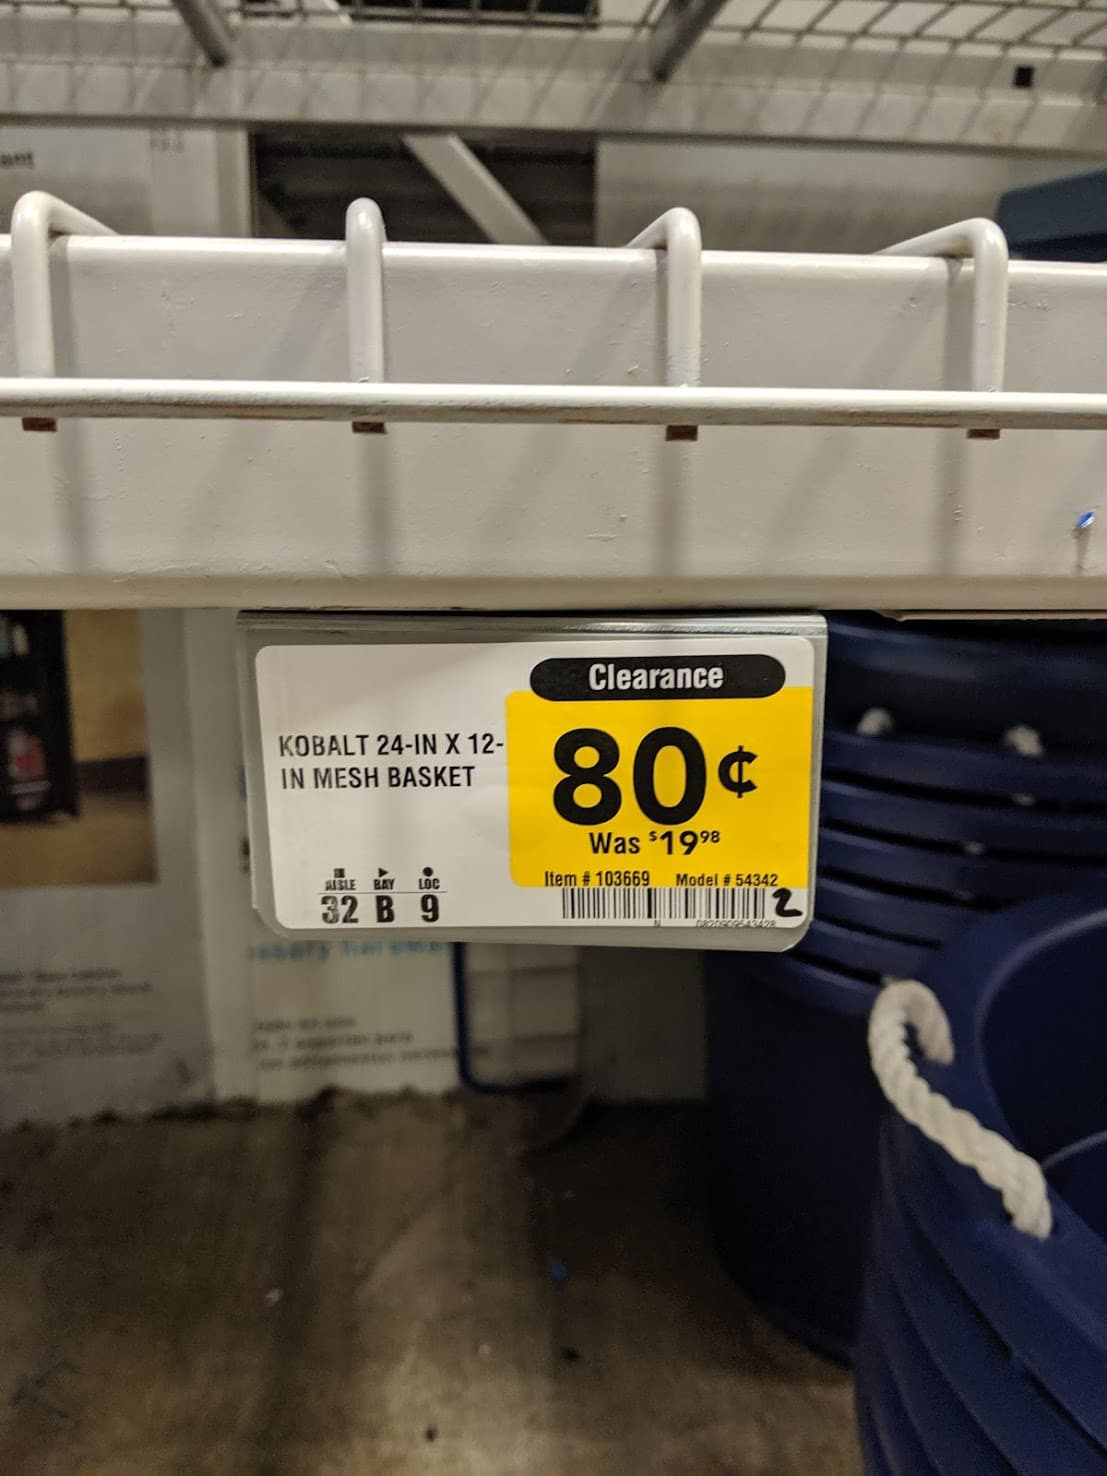 YMMV Lowes Kobalt 1 Piece Mesh Basket 24X12 WAS $19.98 NOW $0.80 IN STORE ONLY